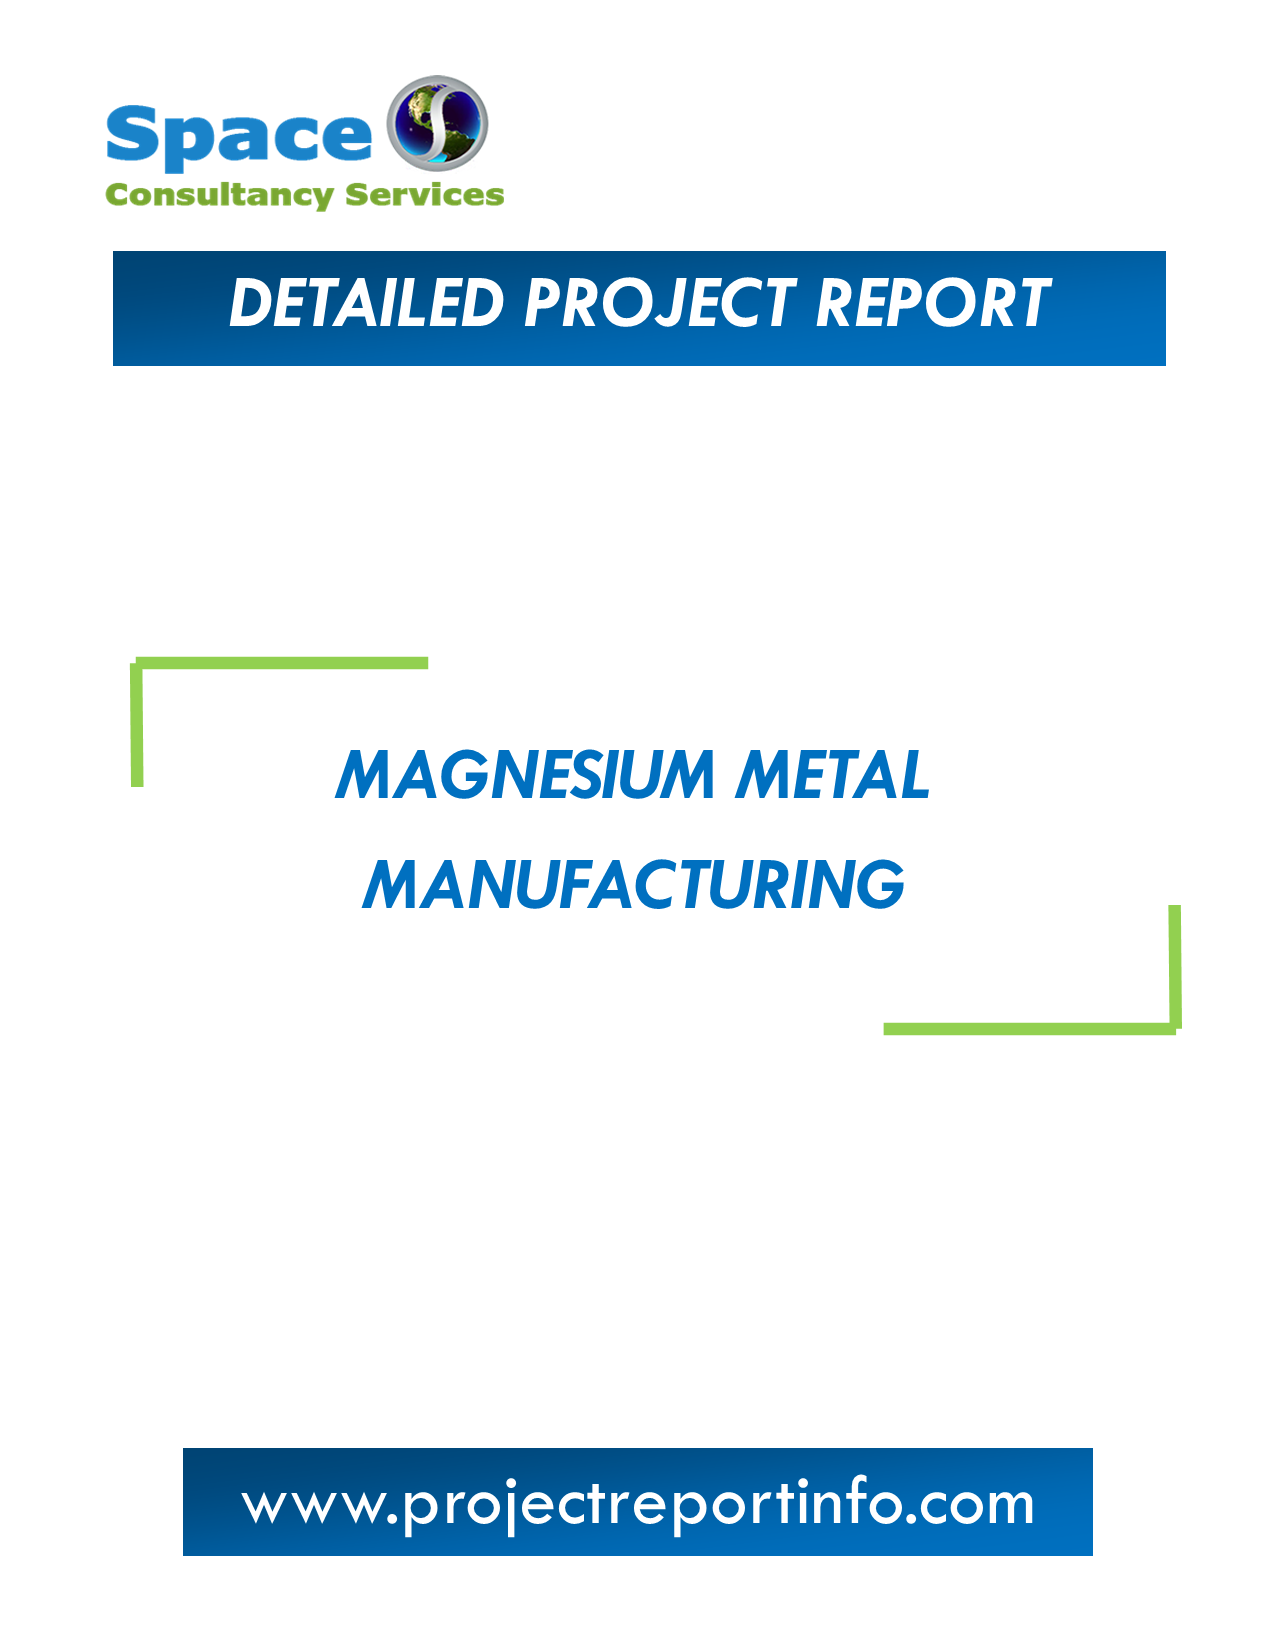 Project Report on Magnesium Metal Manufacturing